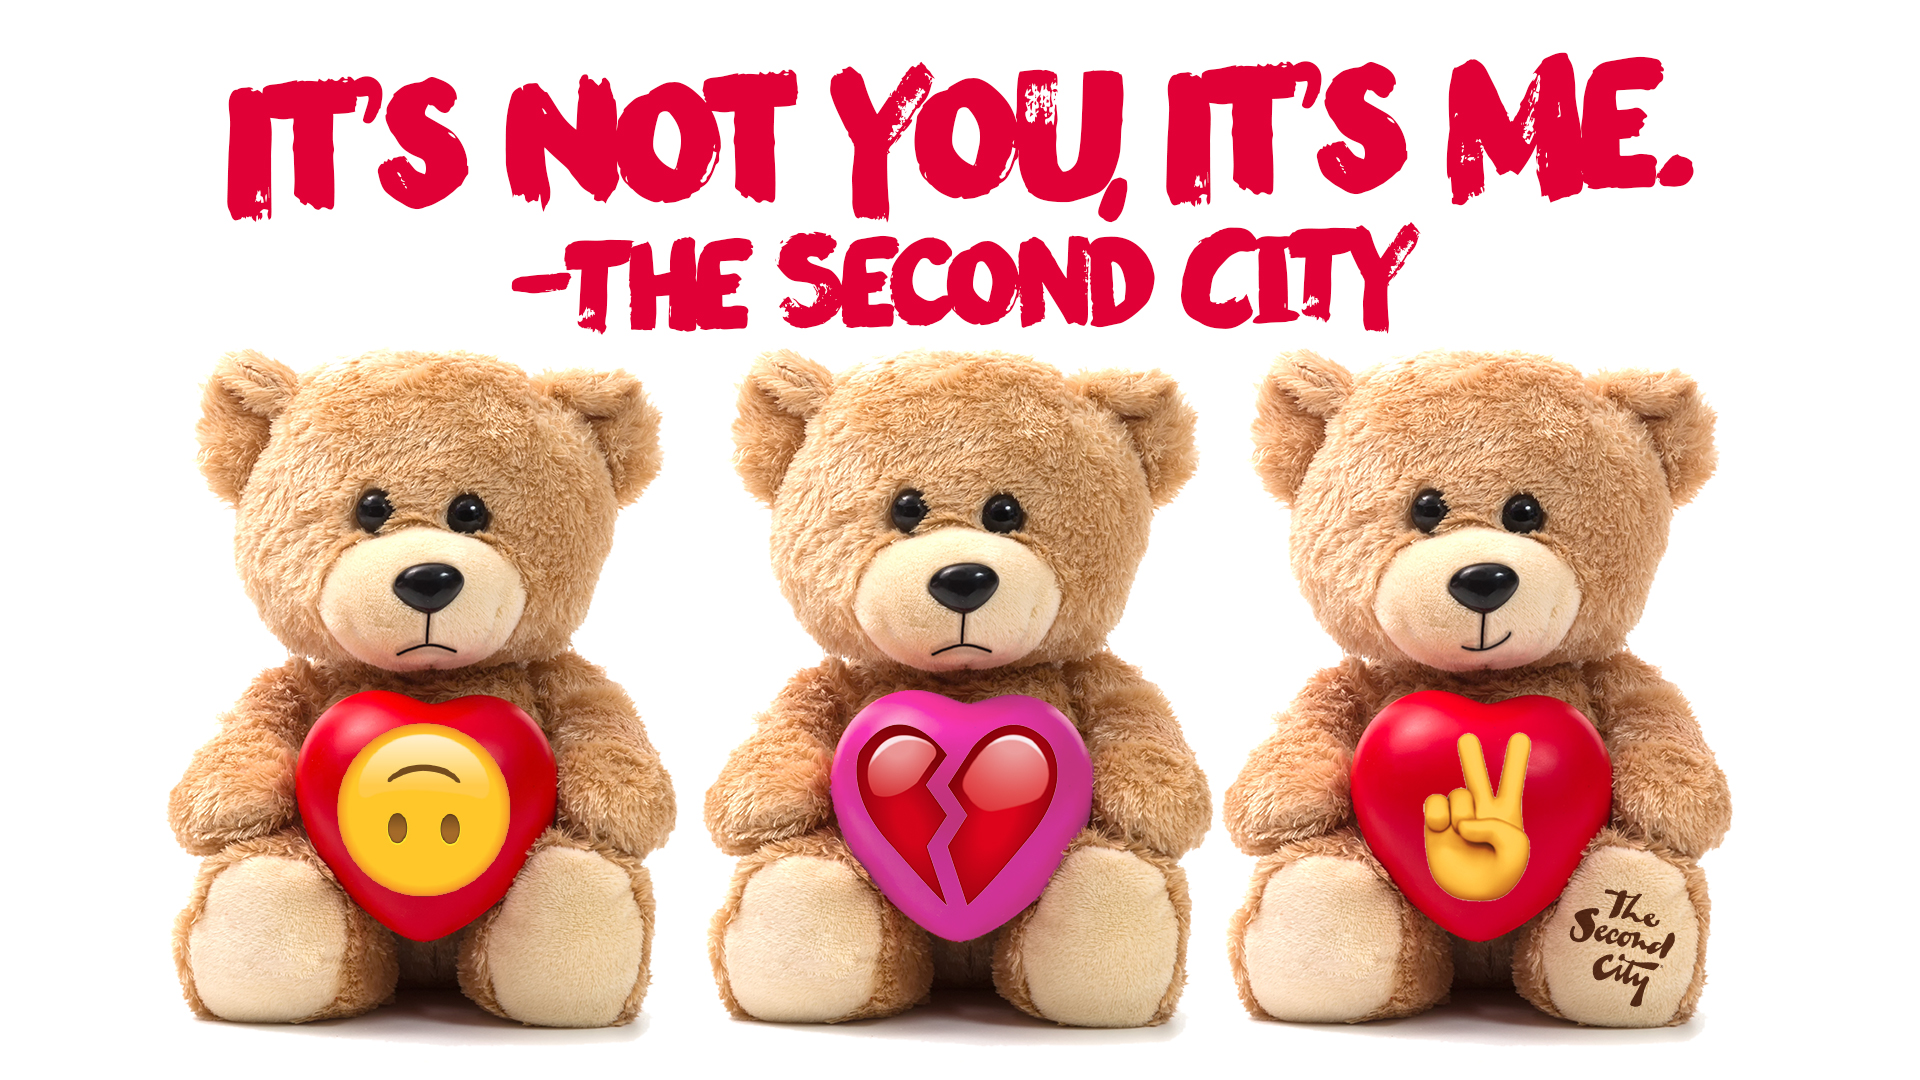 It's Not You, It's Me. -The Second City CAN